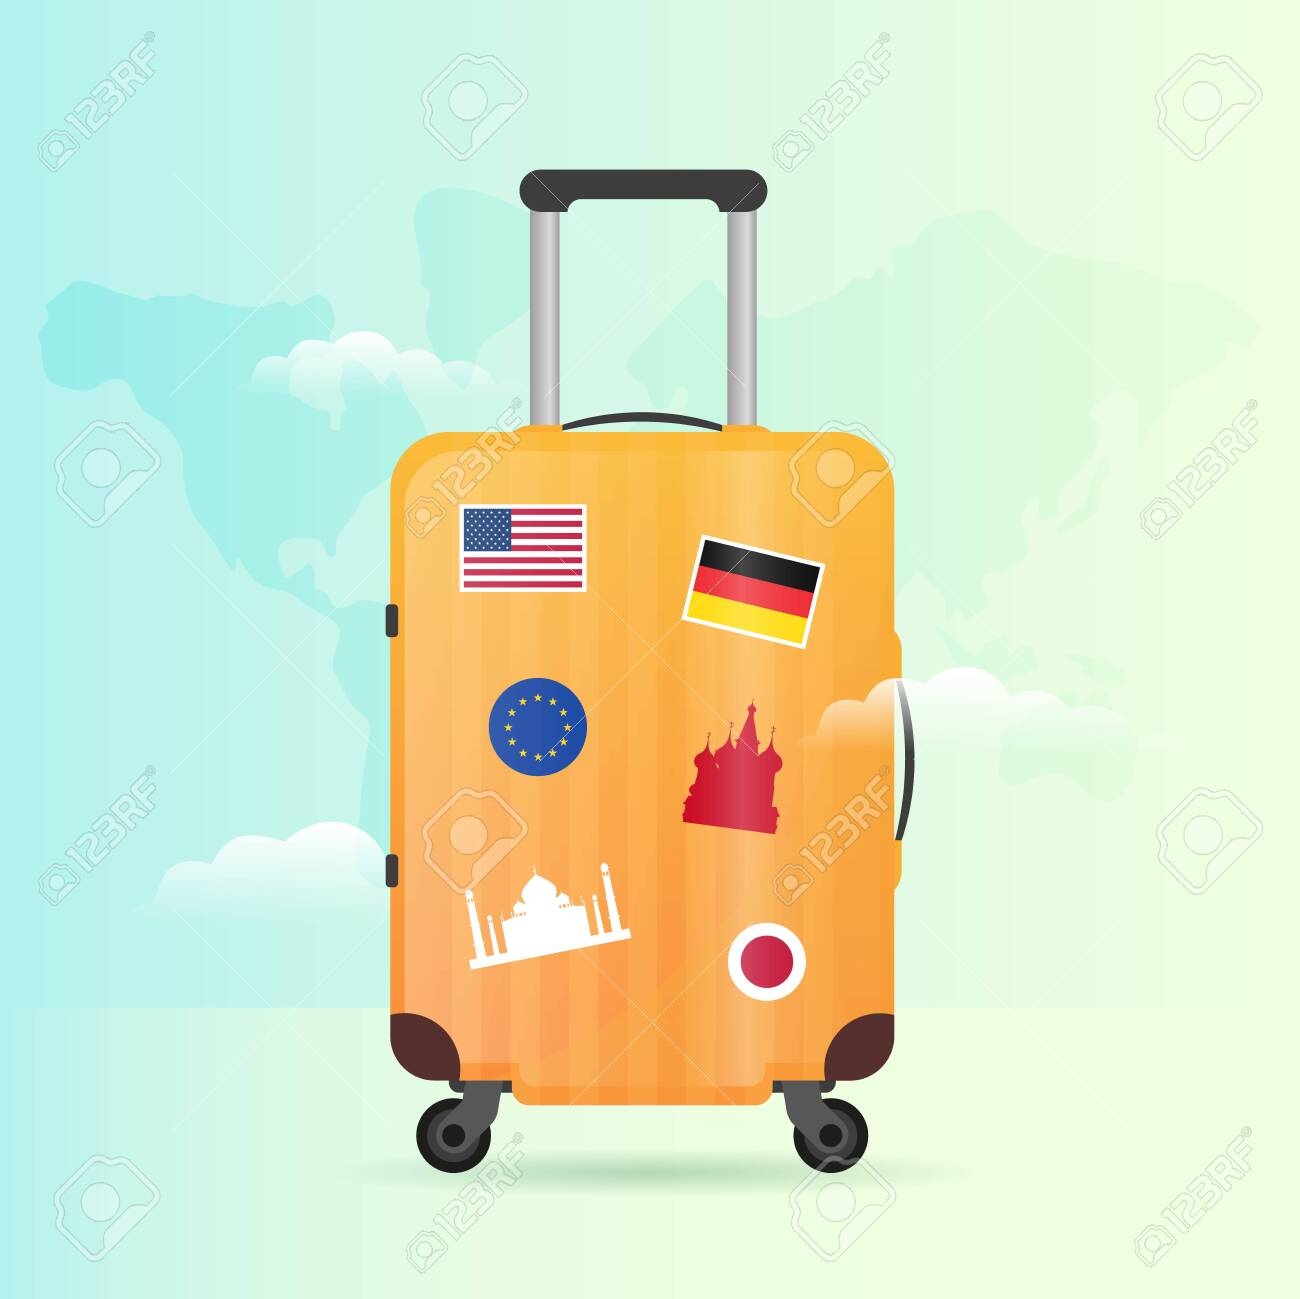 Time To Travel Banner With Travel Bag Vacation Road Trip Tourism Royalty Free Cliparts Vectors And Stock Illustration Image 147455289